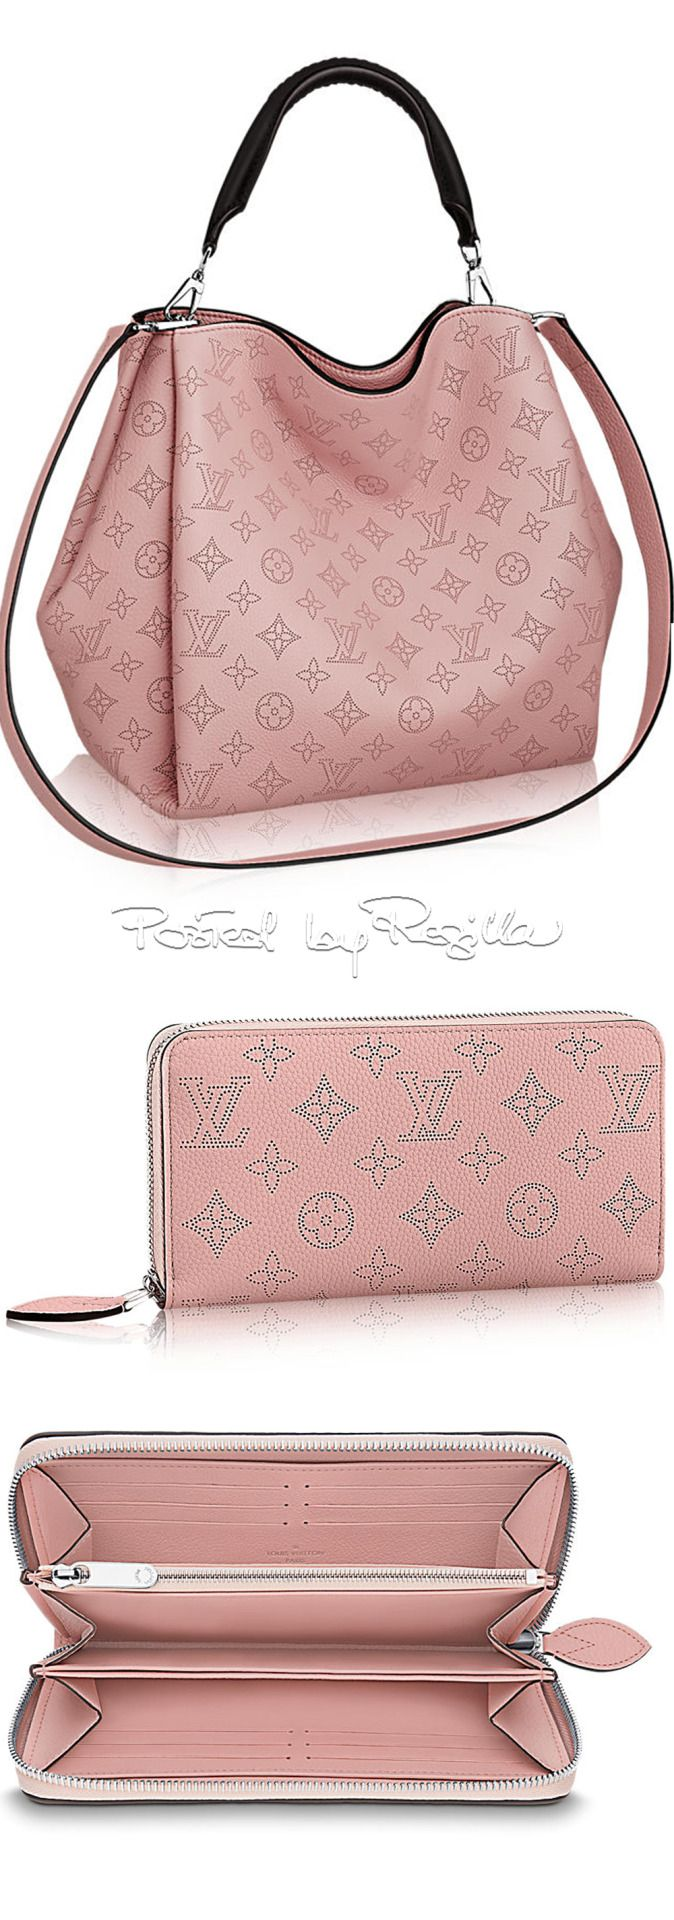 Buy Louis pink vuitton bags photo picture trends